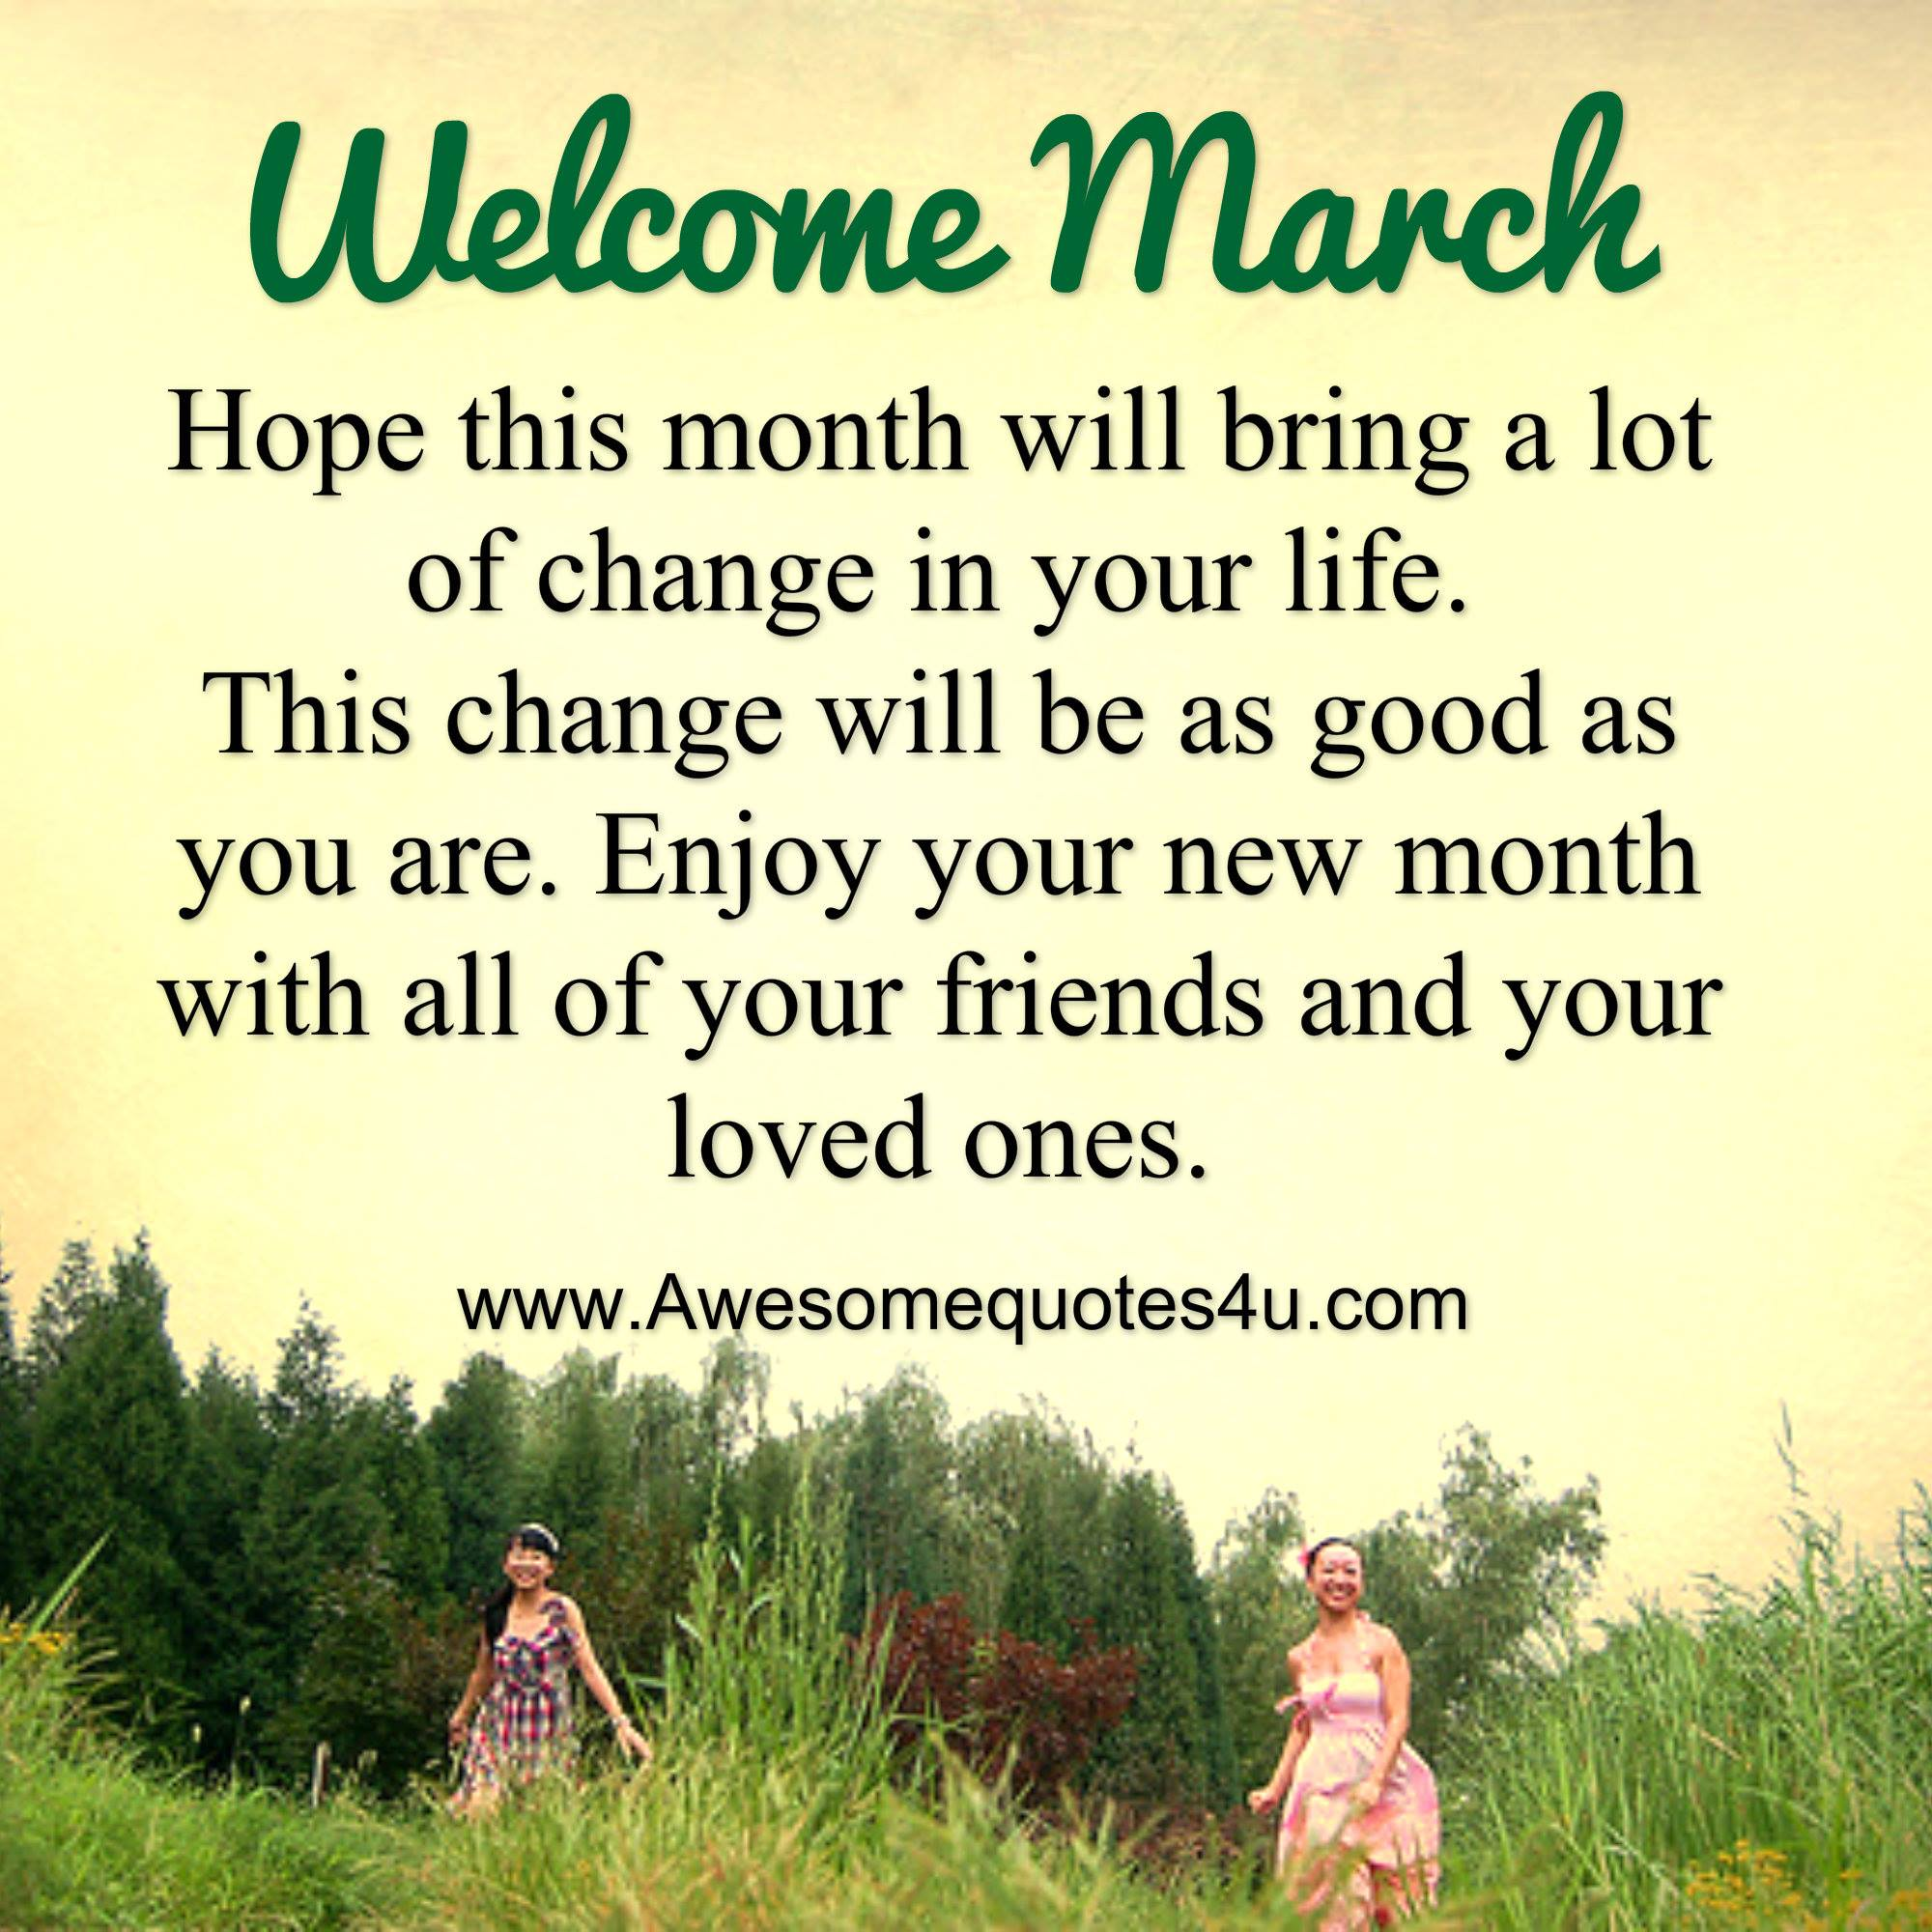 Welcome March Quotes For Calendar